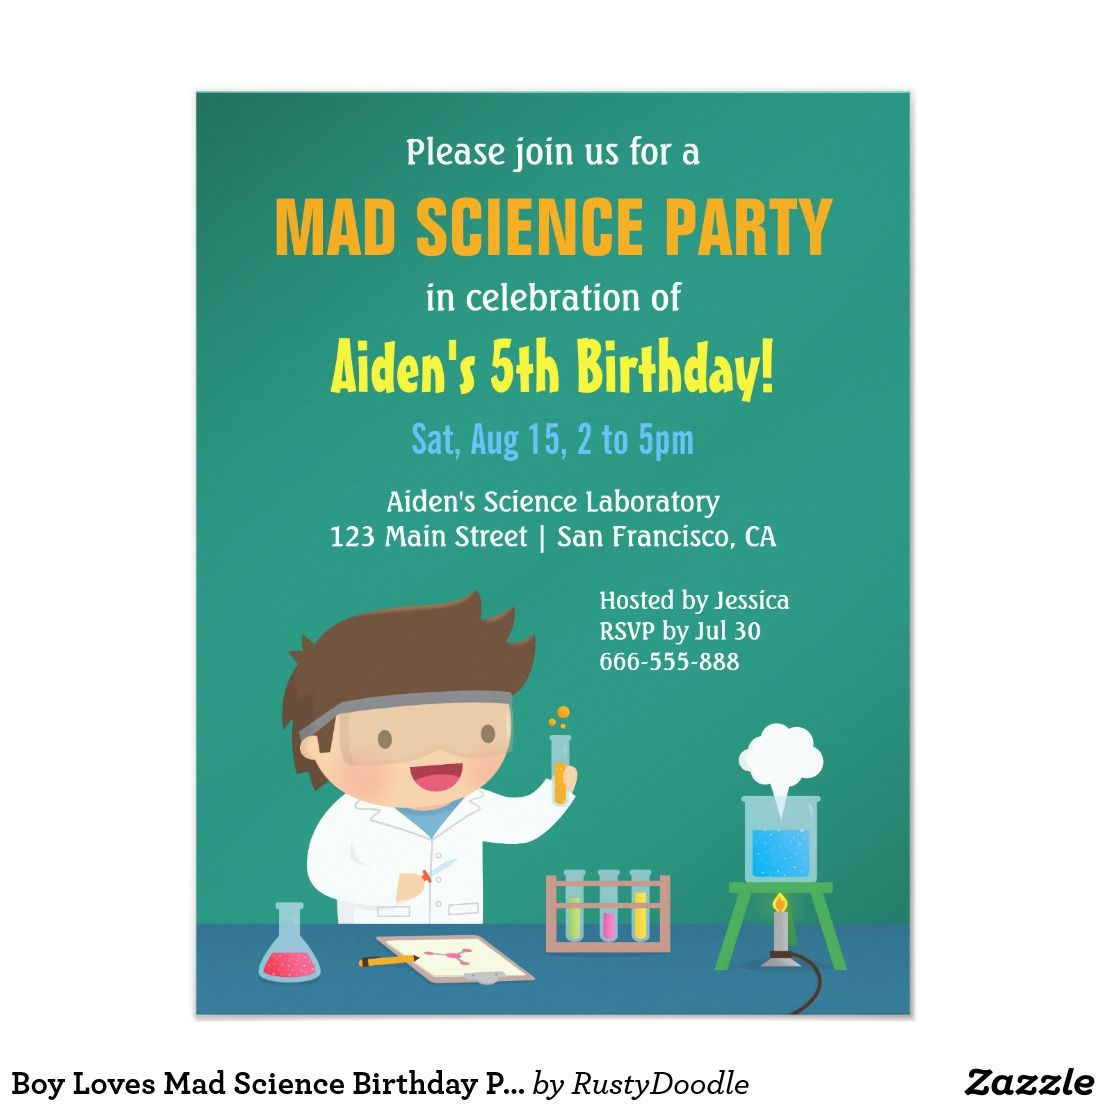 Boy Loves Mad Science Birthday Party Invitations   Mad science ...